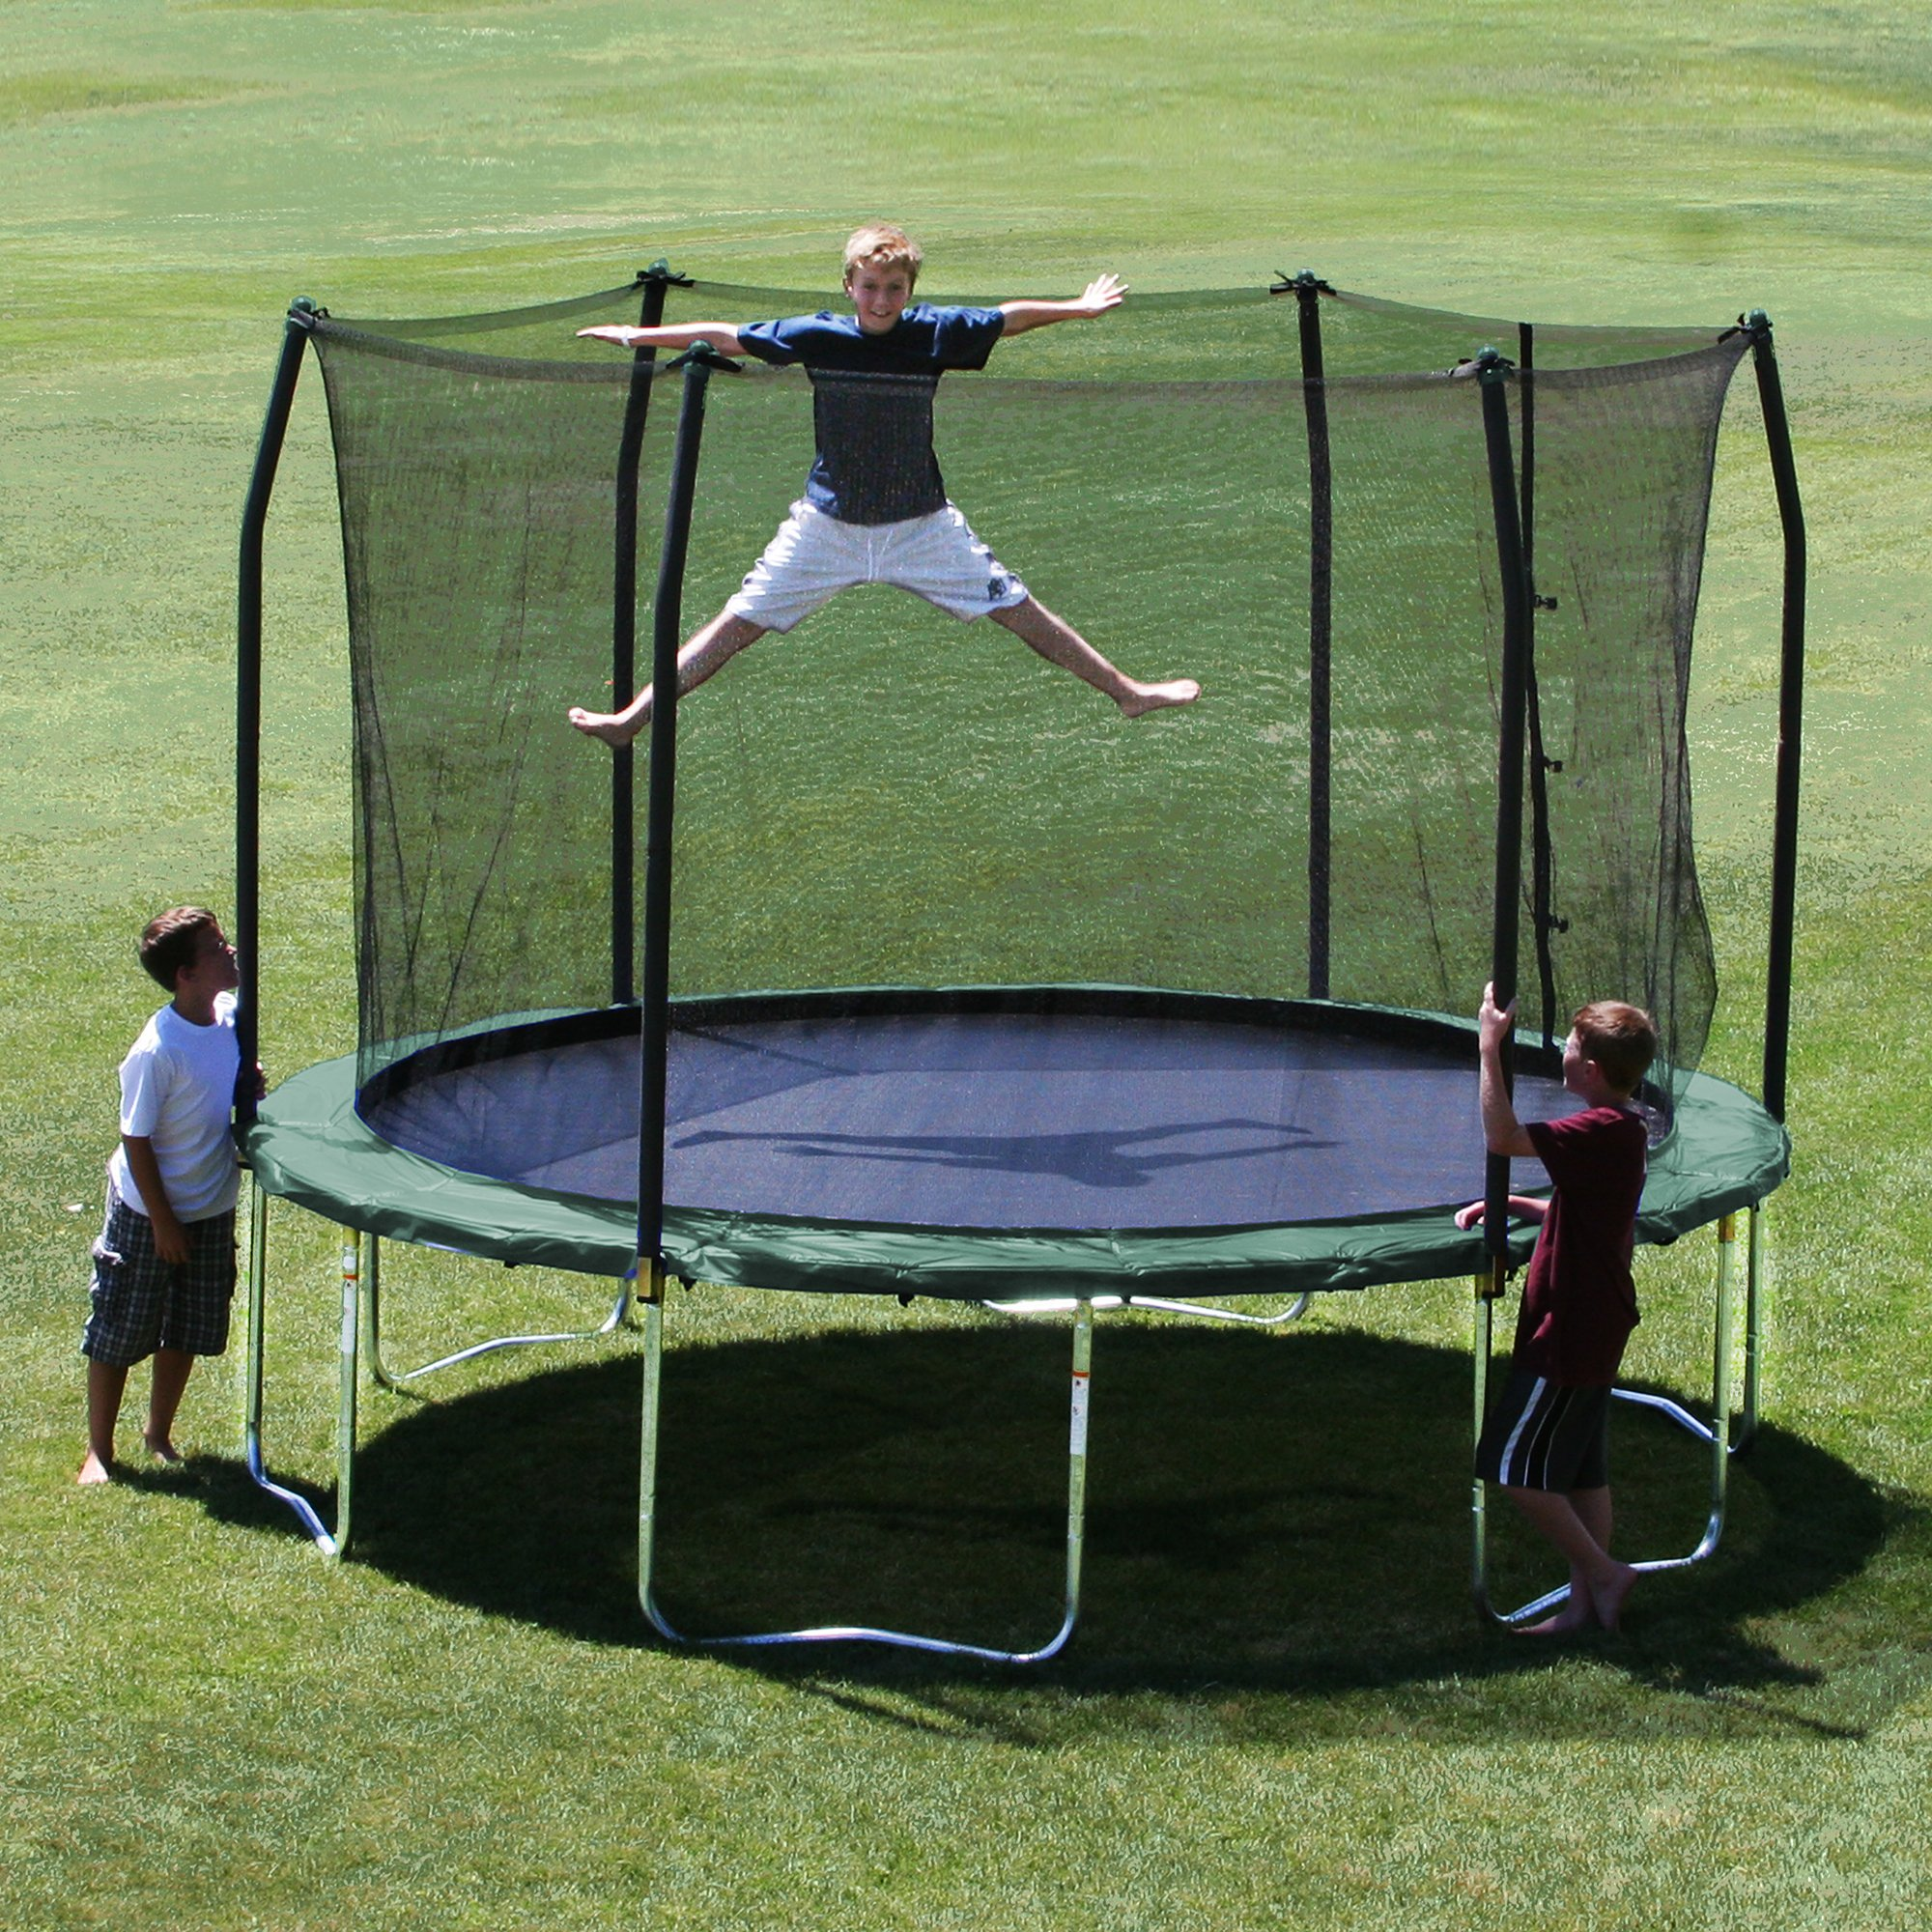 Skywalker 12-Feet Round Trampoline and Enclosure Combo with Spring Pad, Green by Skywalker Trampolines (Image #2)